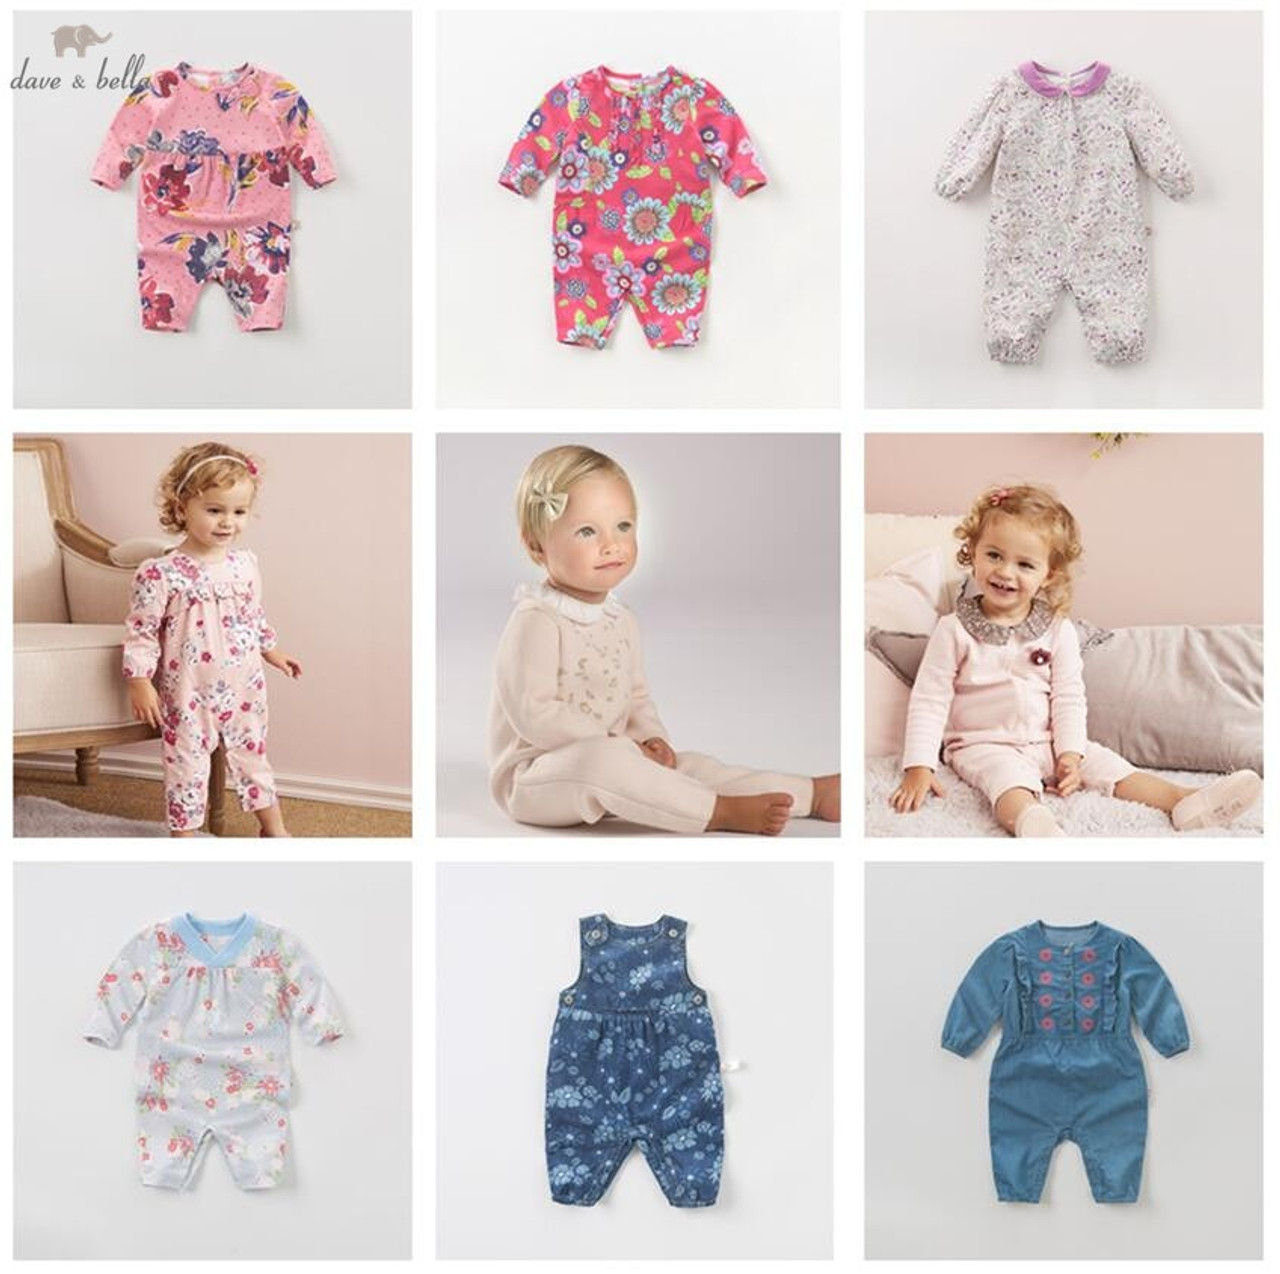 14d4e32d7 DB4017 dave bella clearance spring autumn baby girls cute infant one piece  toddle knitting romper children ...